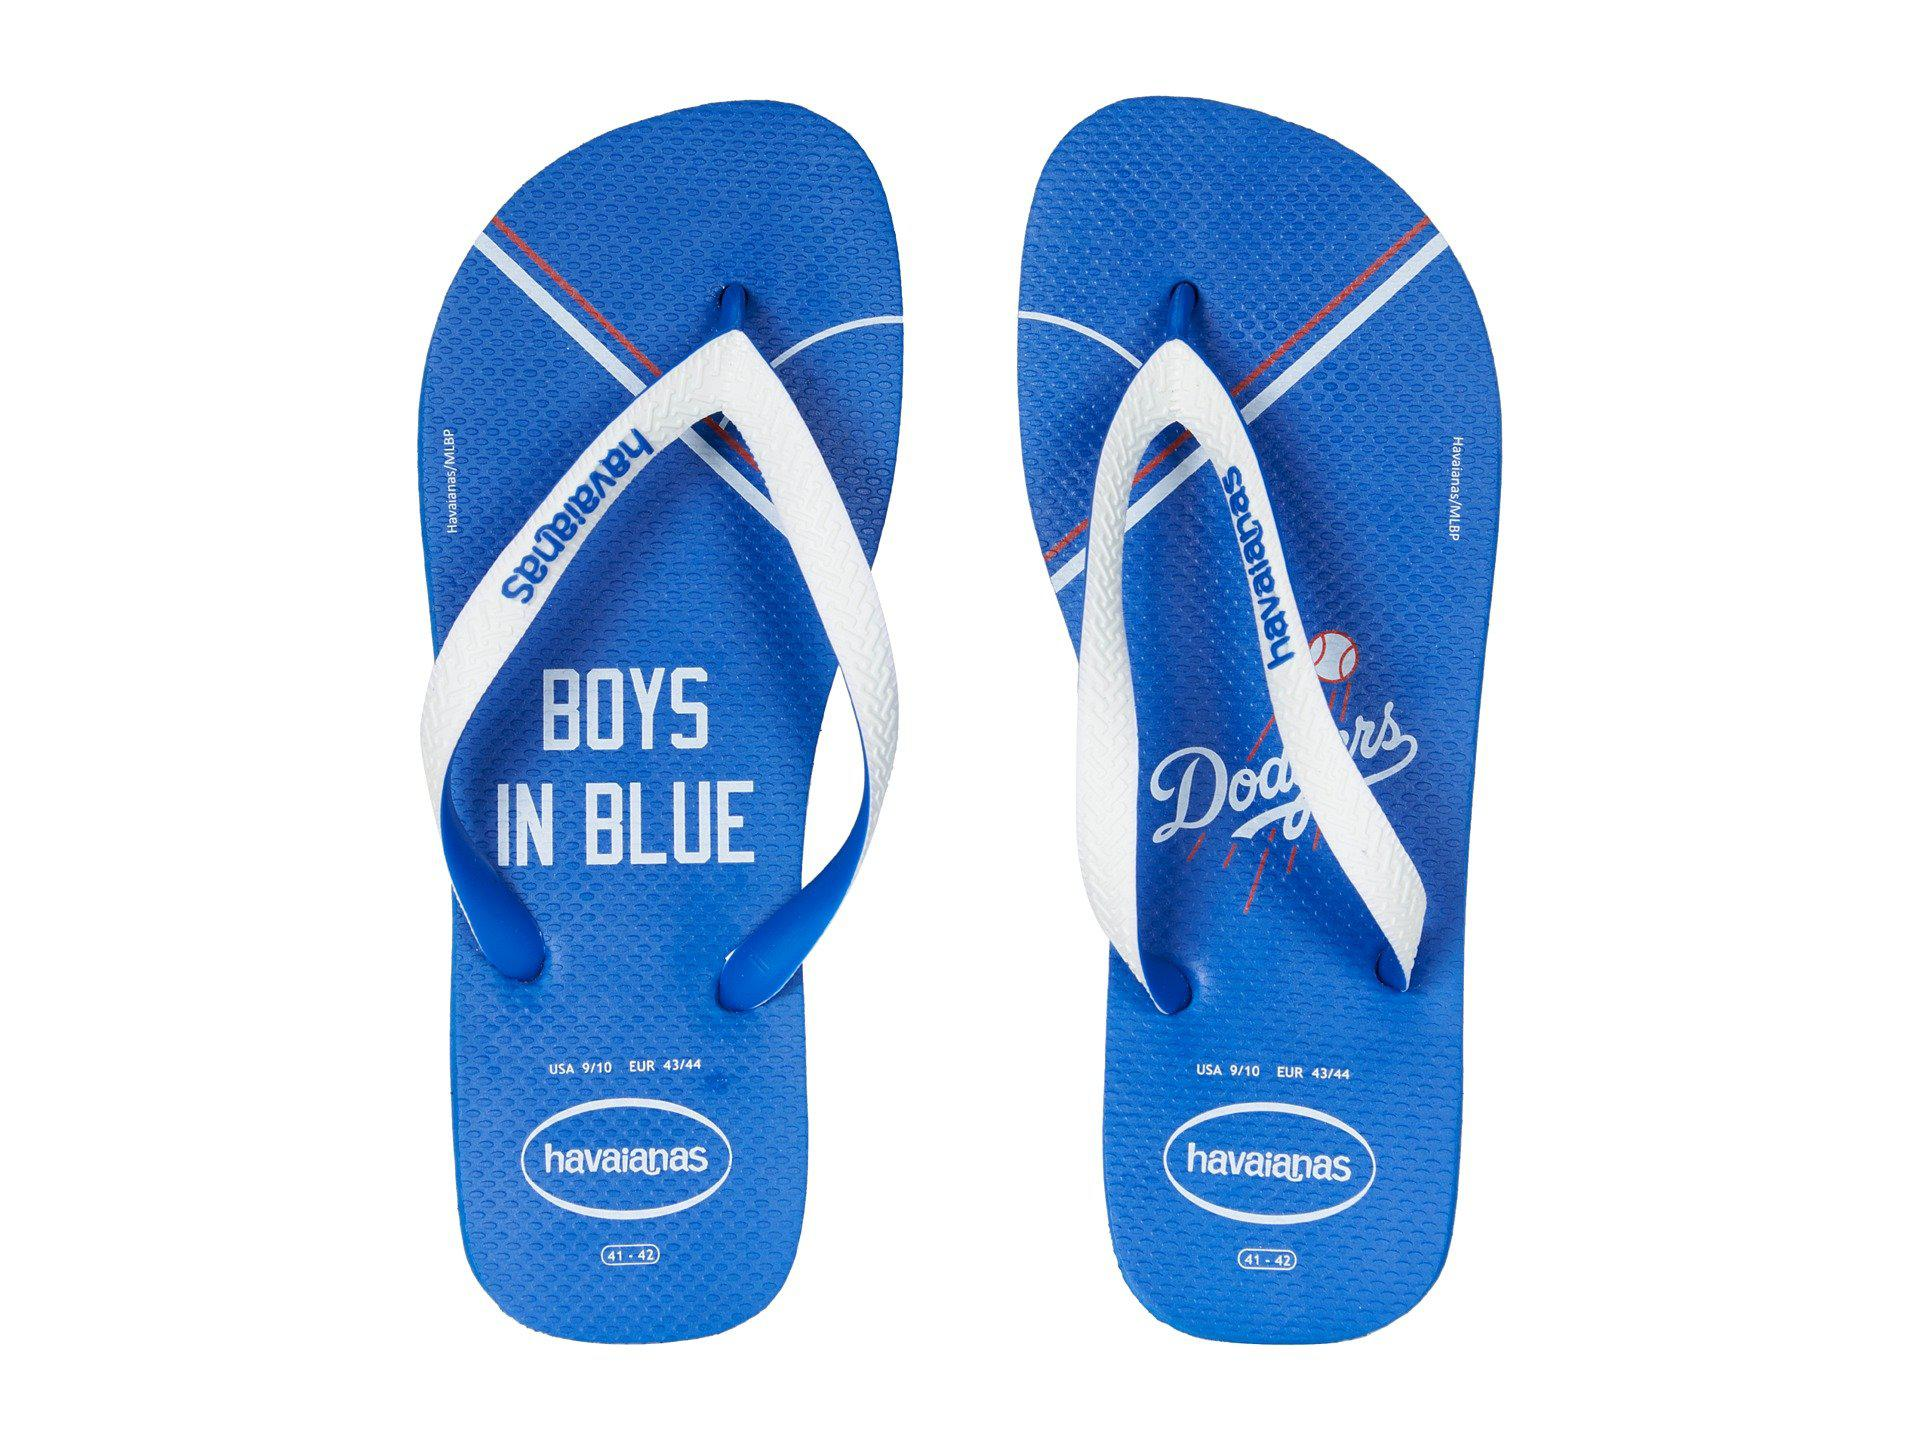 f0c65decd35707 Havaianas - Blue Mlb Flip-flops for Men - Lyst. View fullscreen